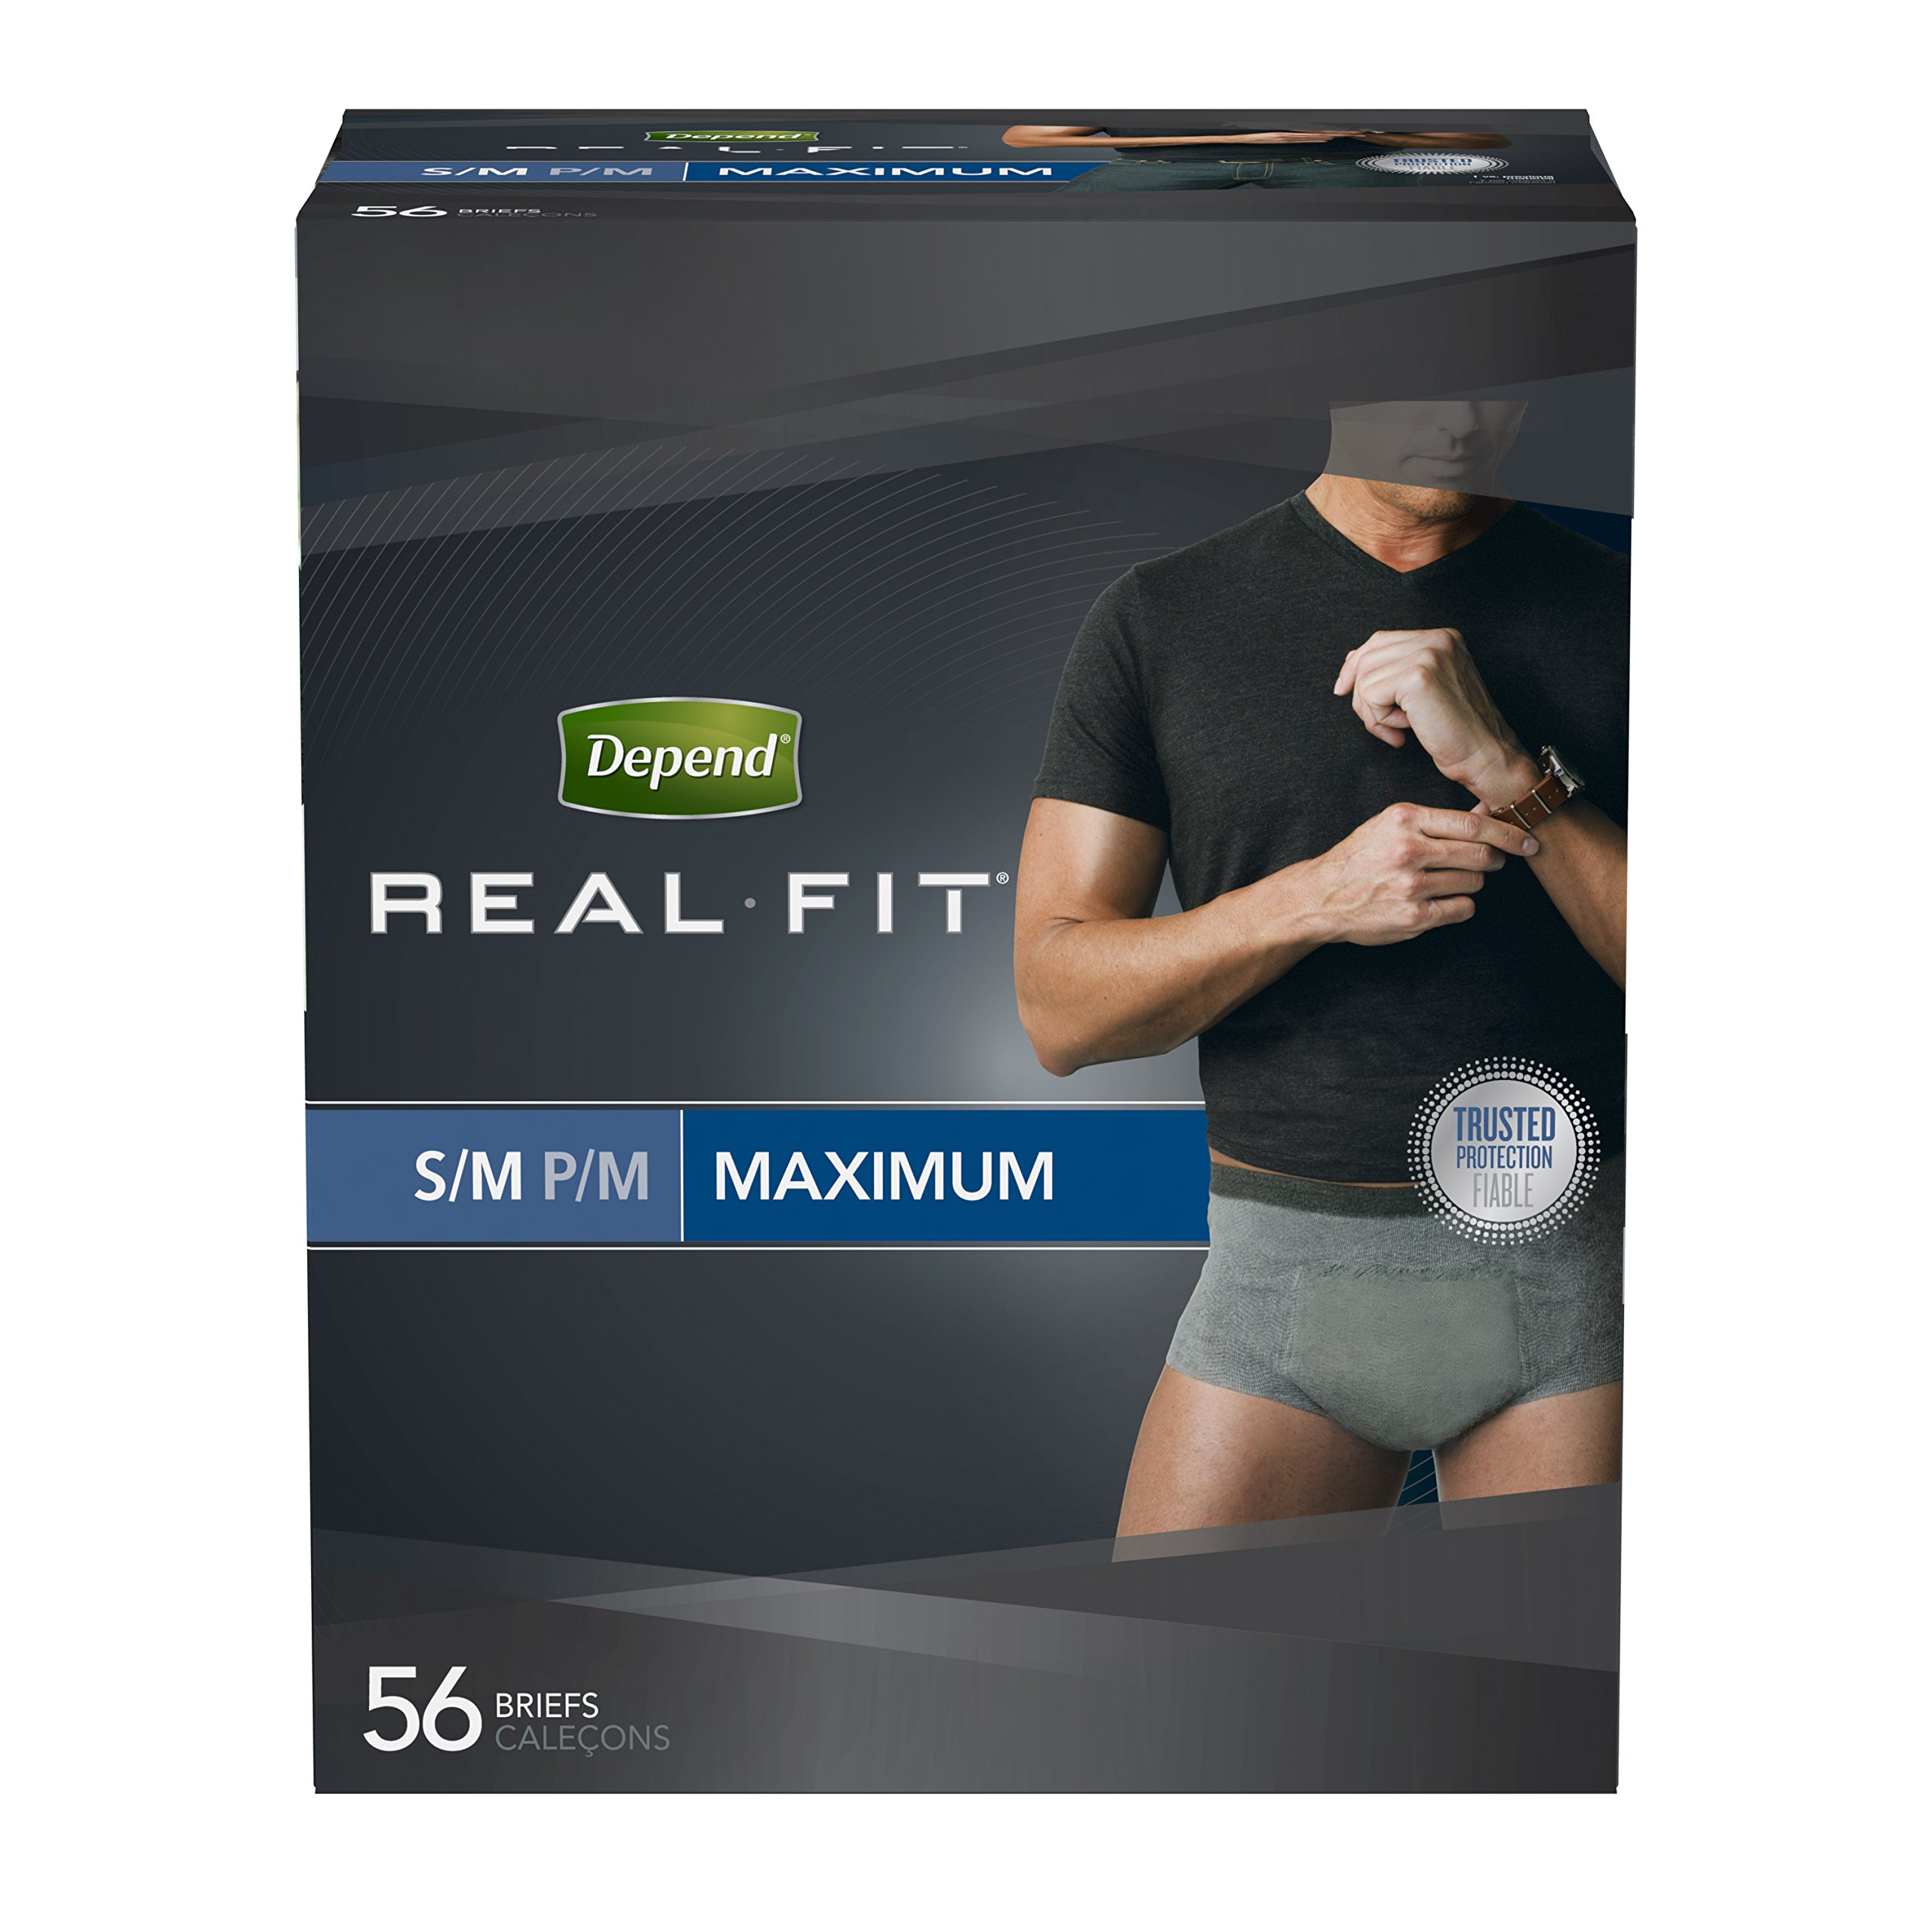 Depend Real Fit Incontinence Briefs for Men, Maximum Absorbency, S/M, Grey by Depend (Image #1)